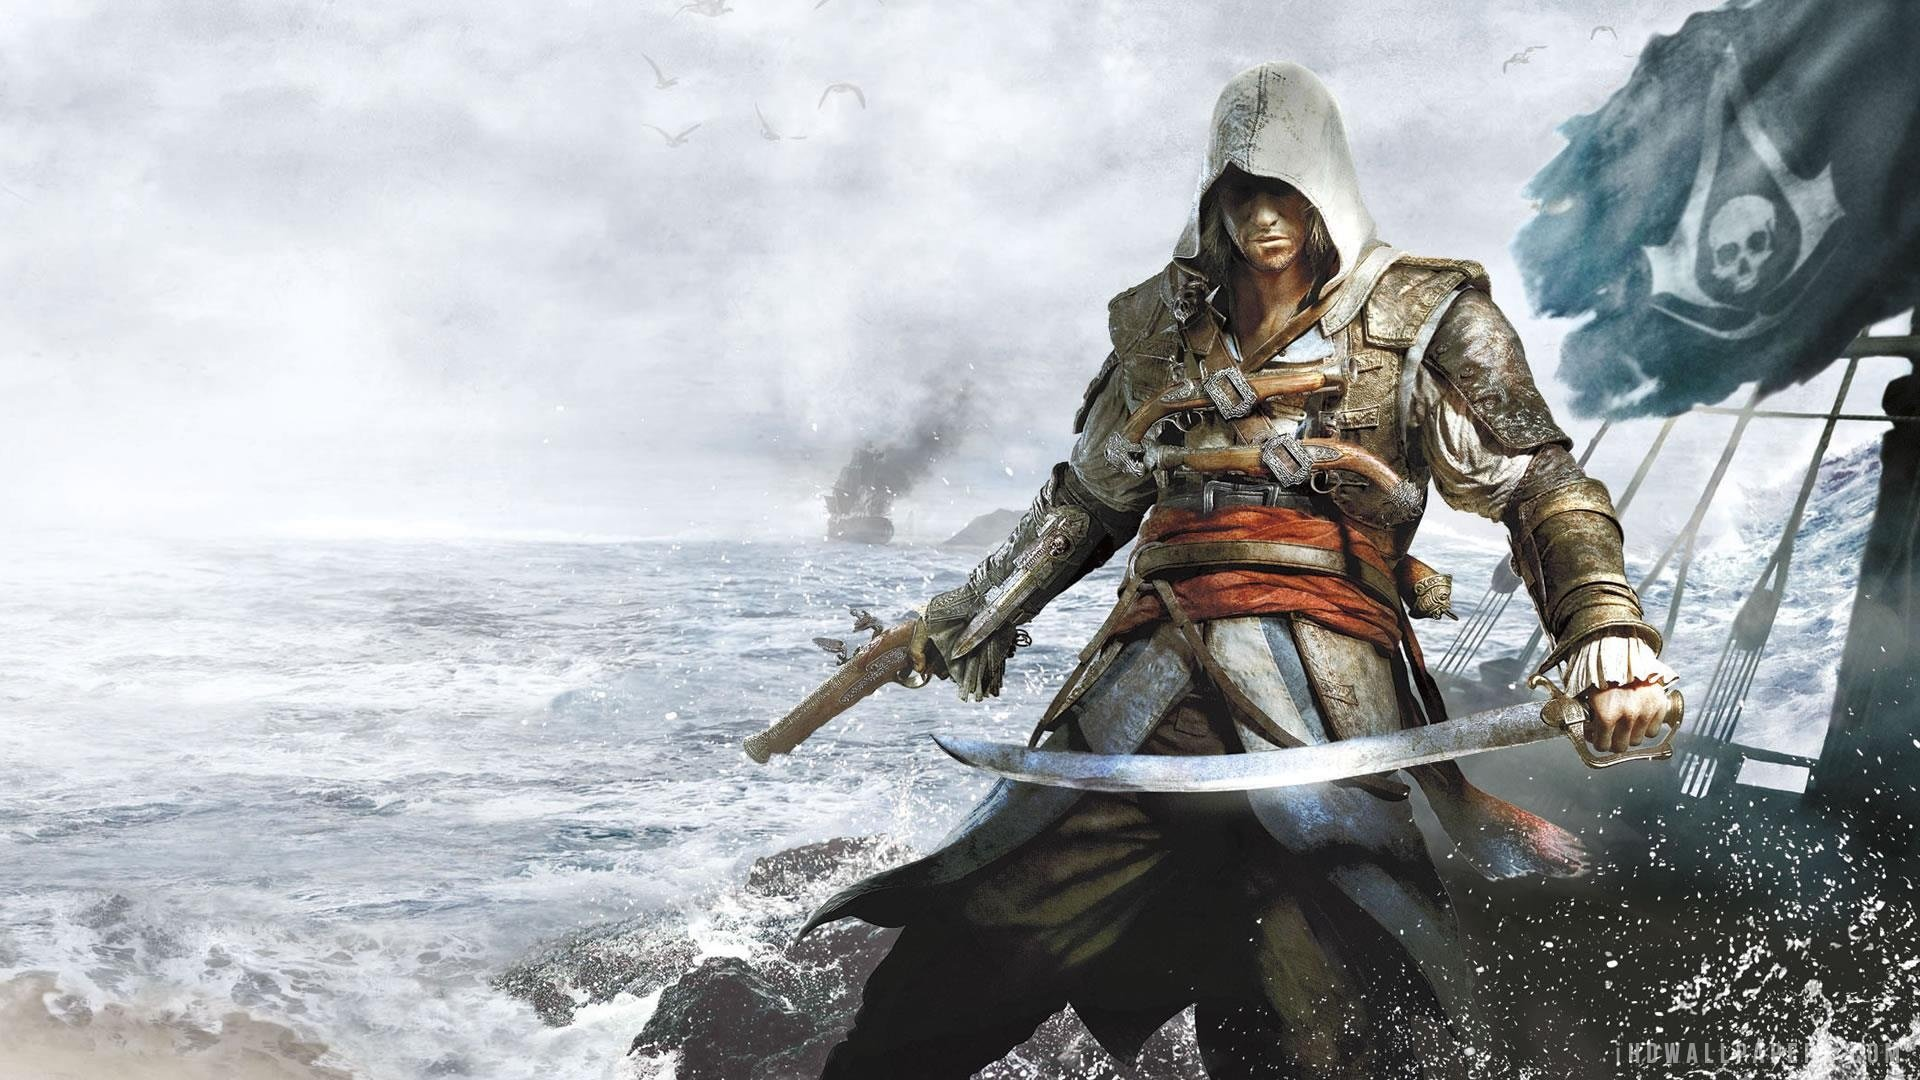 Assassins Creed 4 HD Wallpaper   iHD Wallpapers 1920x1080